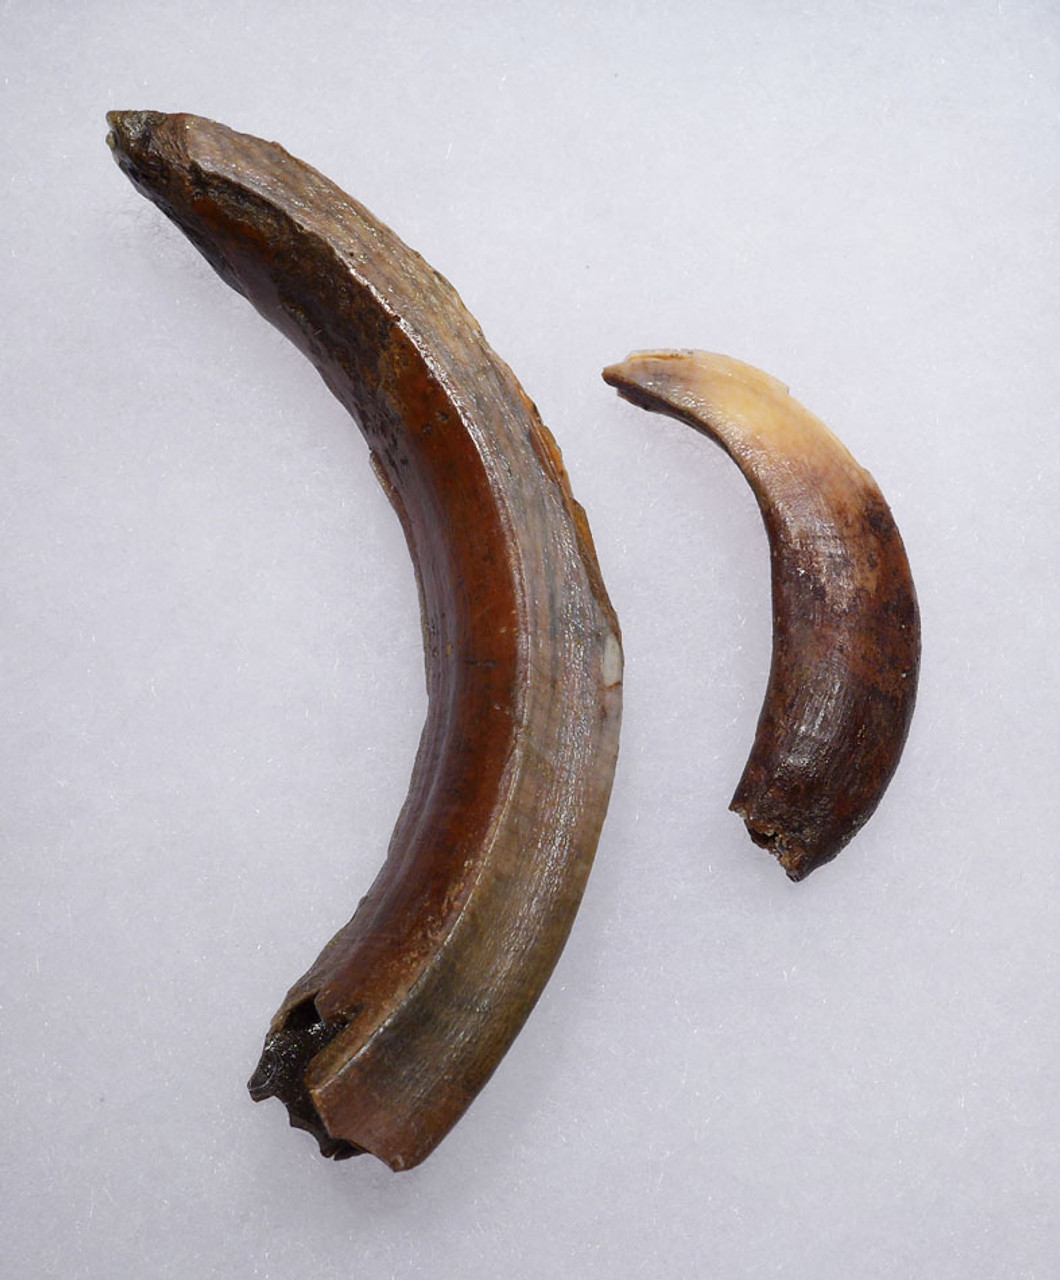 LARGE EUROPEAN ICE AGE WILD BOAR FOSSIL LOWER TUSK AND UPPER INCISOR TOOTH *LMX232